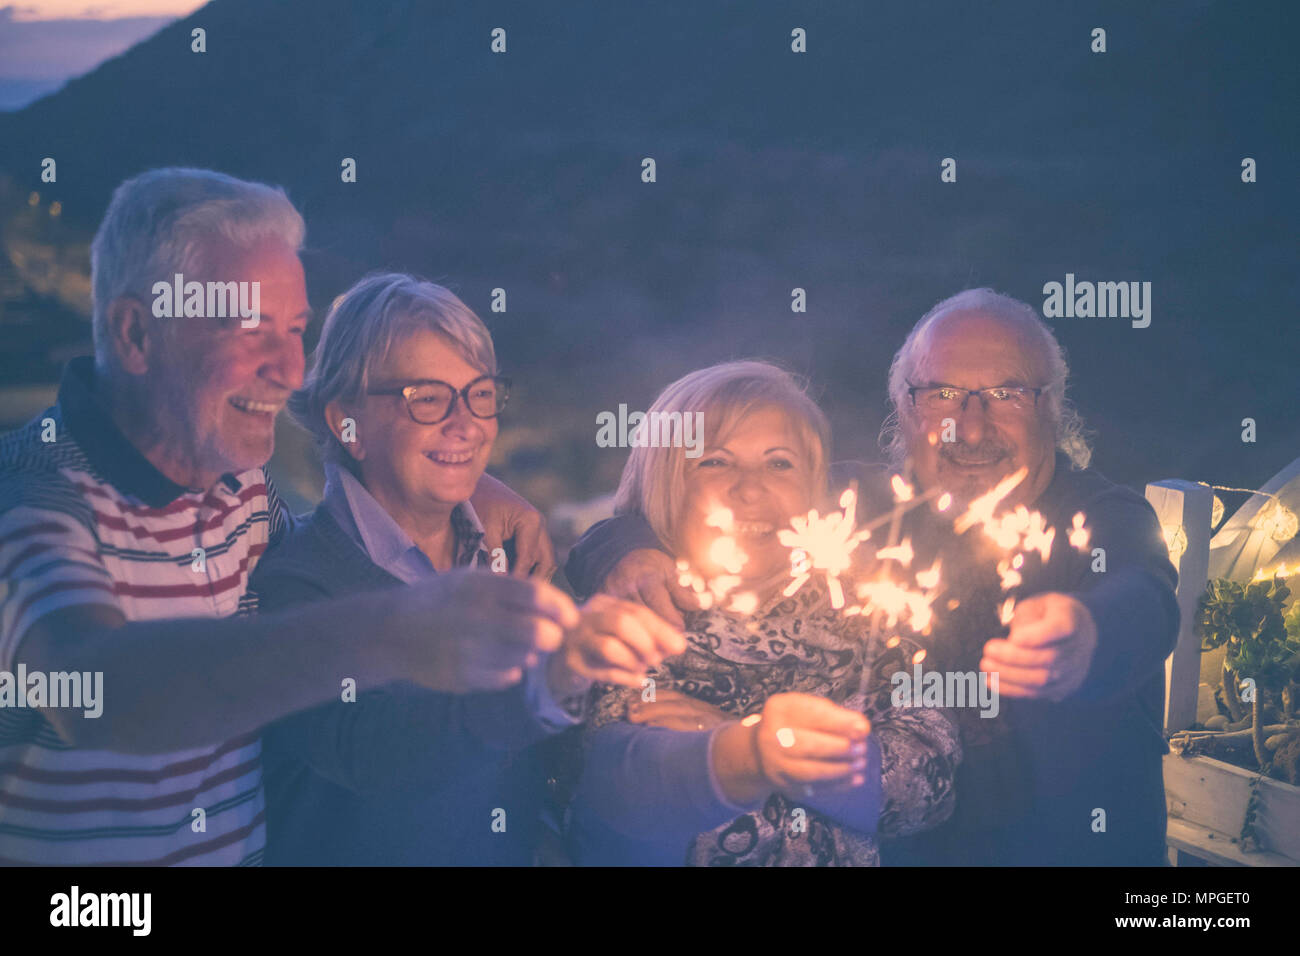 celebrate event new year eve at midnight for group of nice people beautiful senior adult. men and women with sparkles outdoor by night - Stock Image